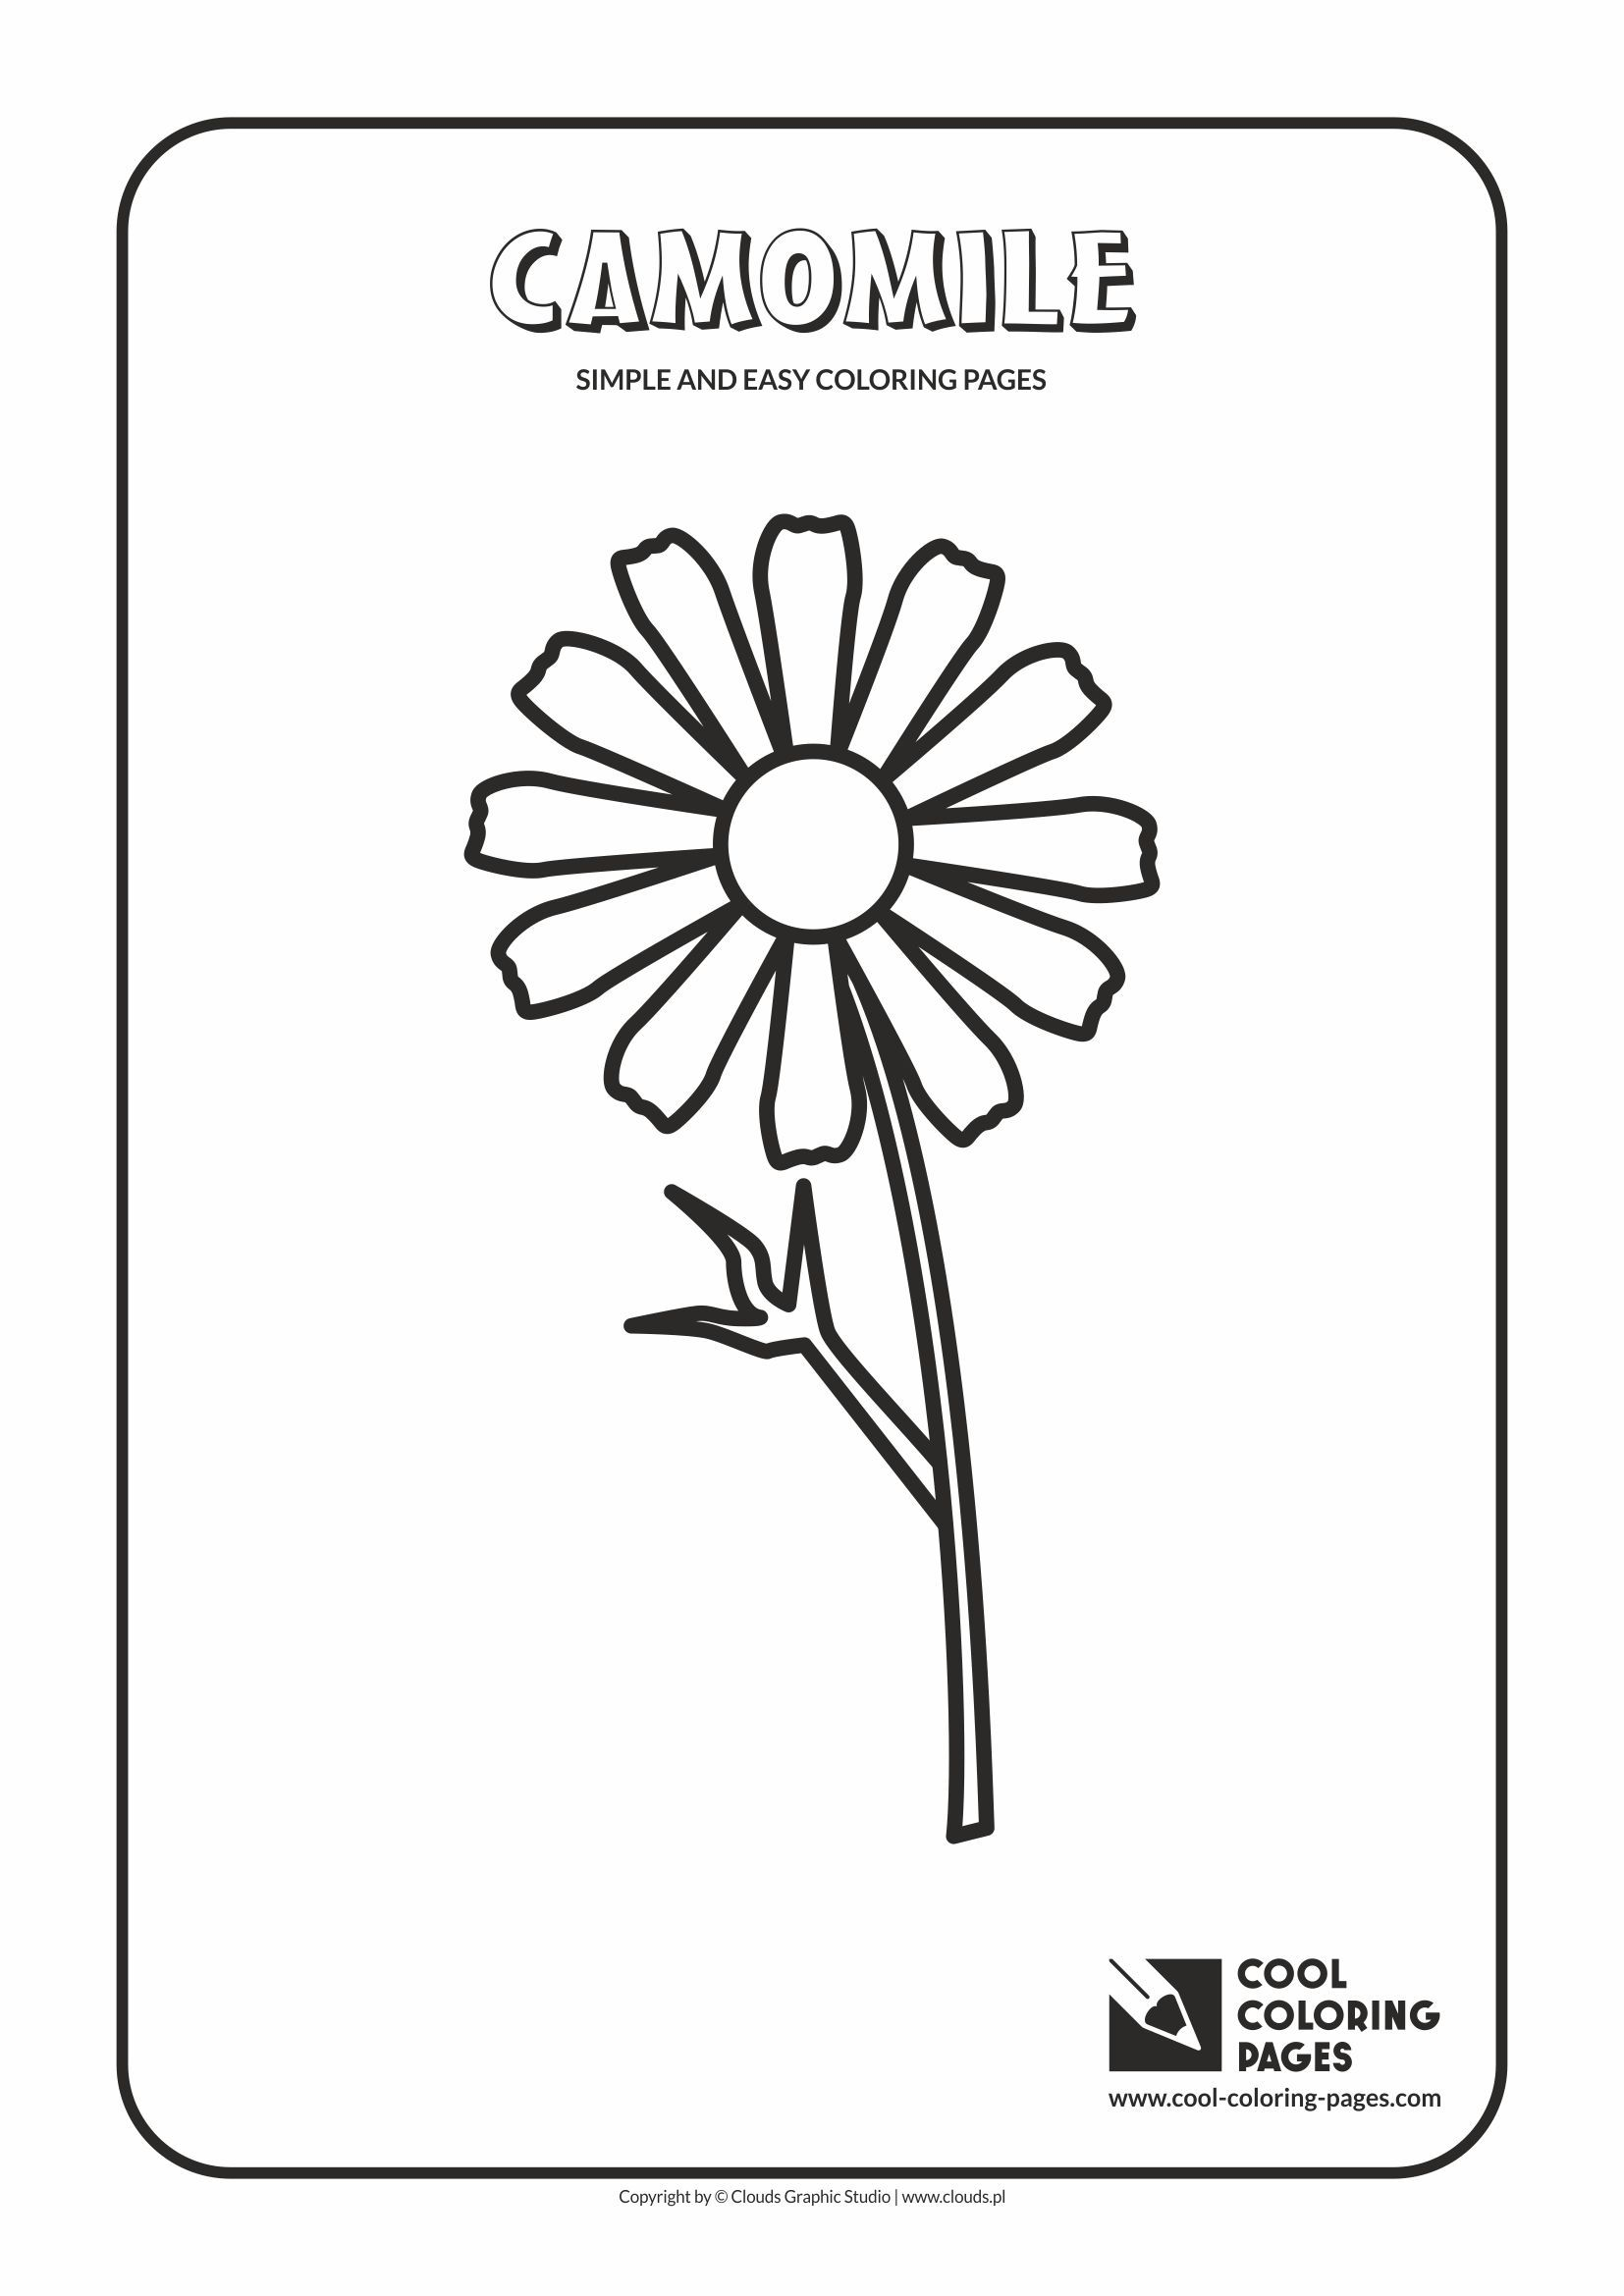 Simple and easy coloring pages for toddlers - Camomile | Simple and ...